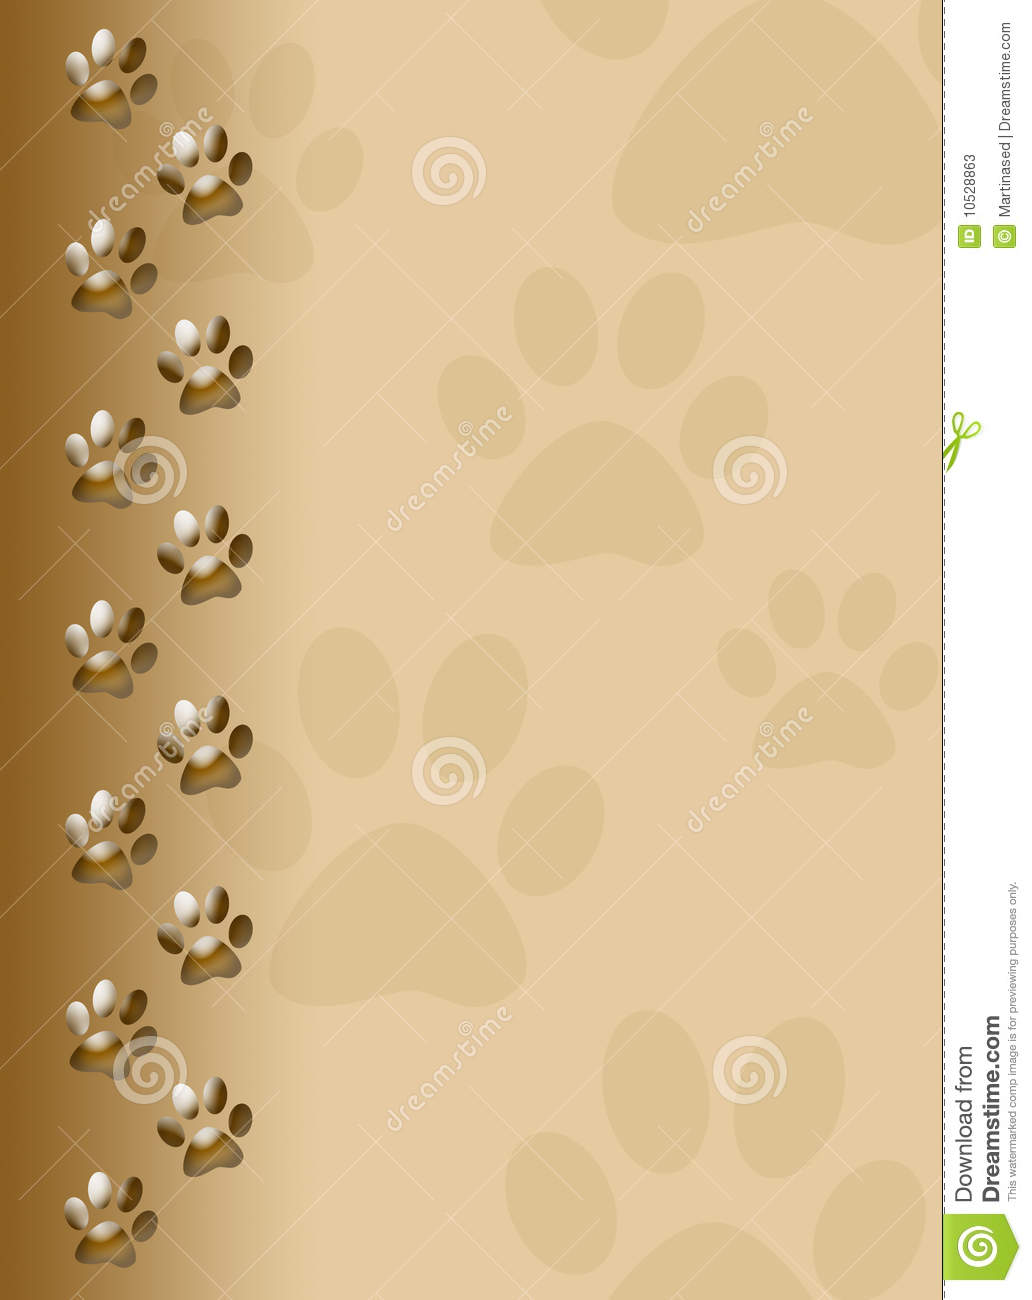 Colorful Cat Paw Print Border Cute cat paw print on brown